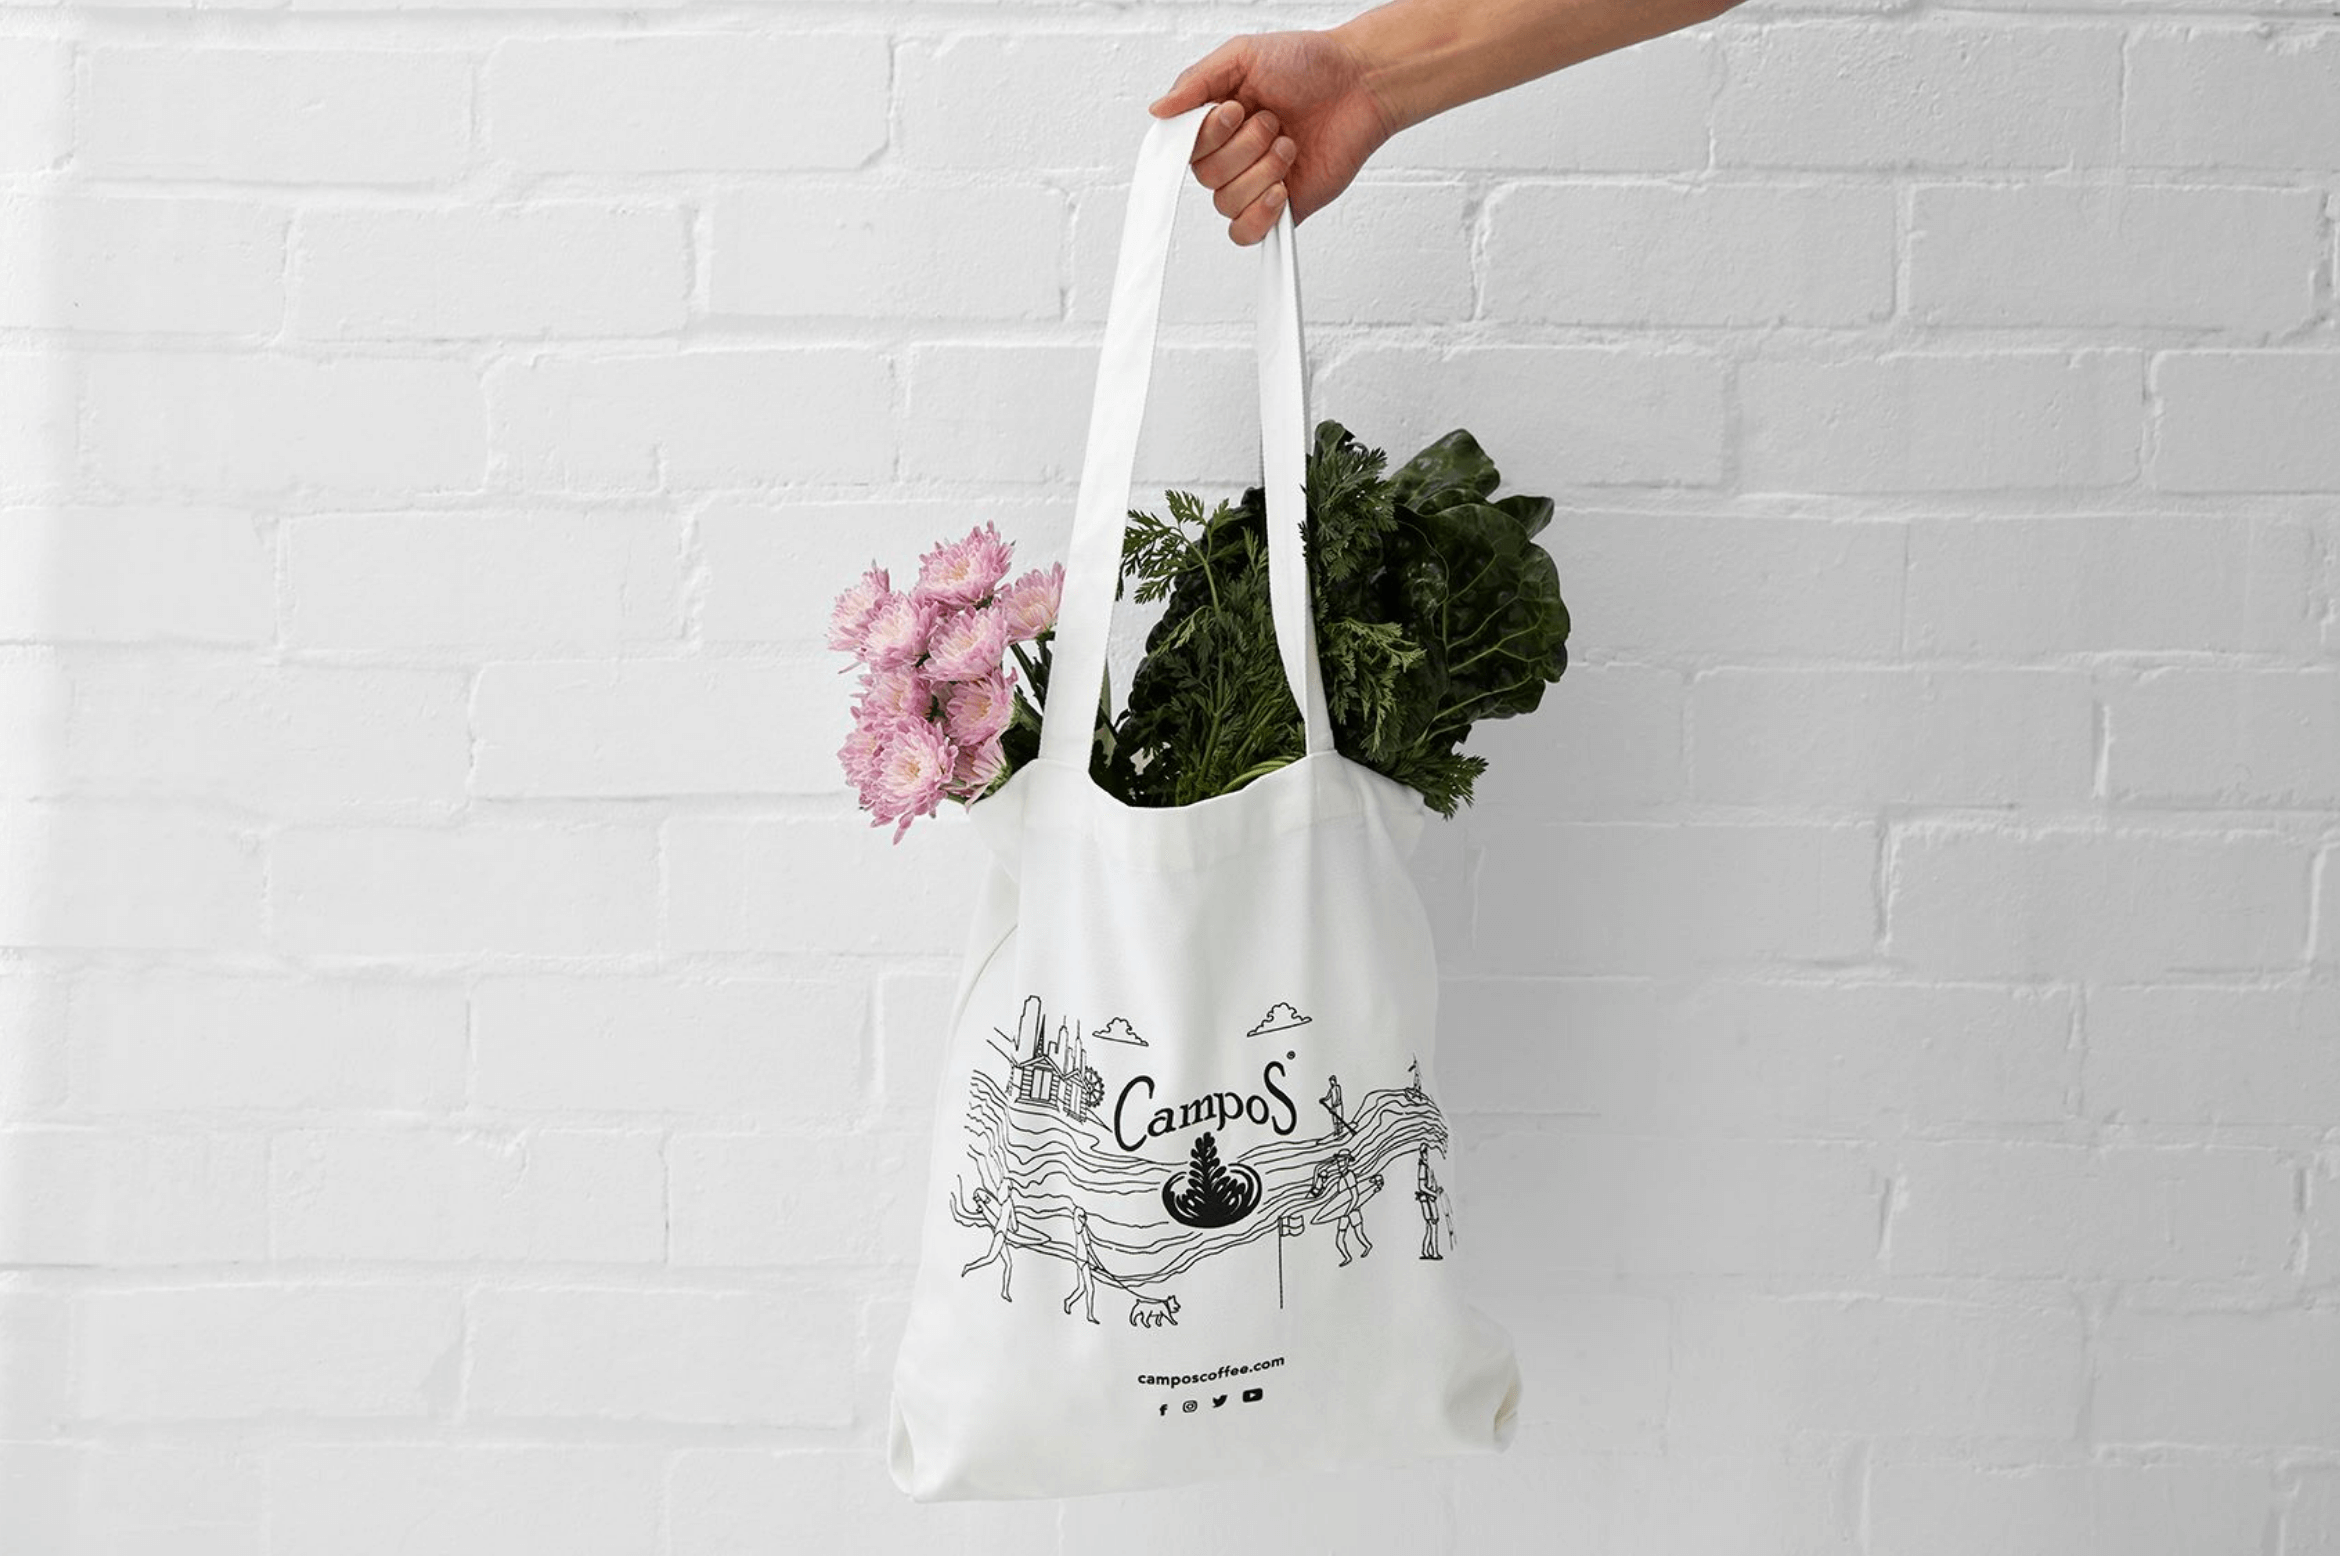 Campos coffee tote bag sydney & Melbourne illustrated design